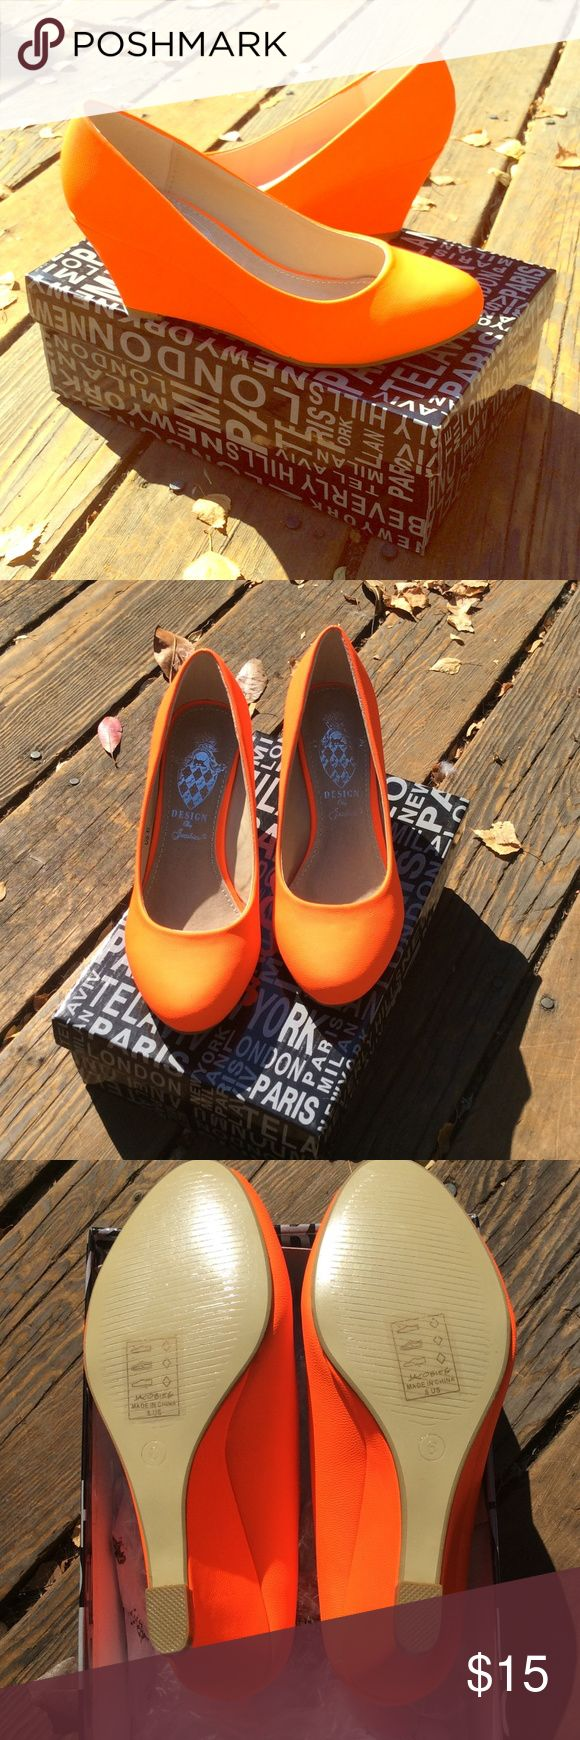 NWT neon Orange wedge heels Brand new in box, perfect condition! Neon orange wedge heels by Jacobies. Super cute and FUN! Size 6. Great for summer, festivals, club, etc. purchased from nordstrom last October to use with a Halloween costume but never used them. Nordstrom Shoes Wedges